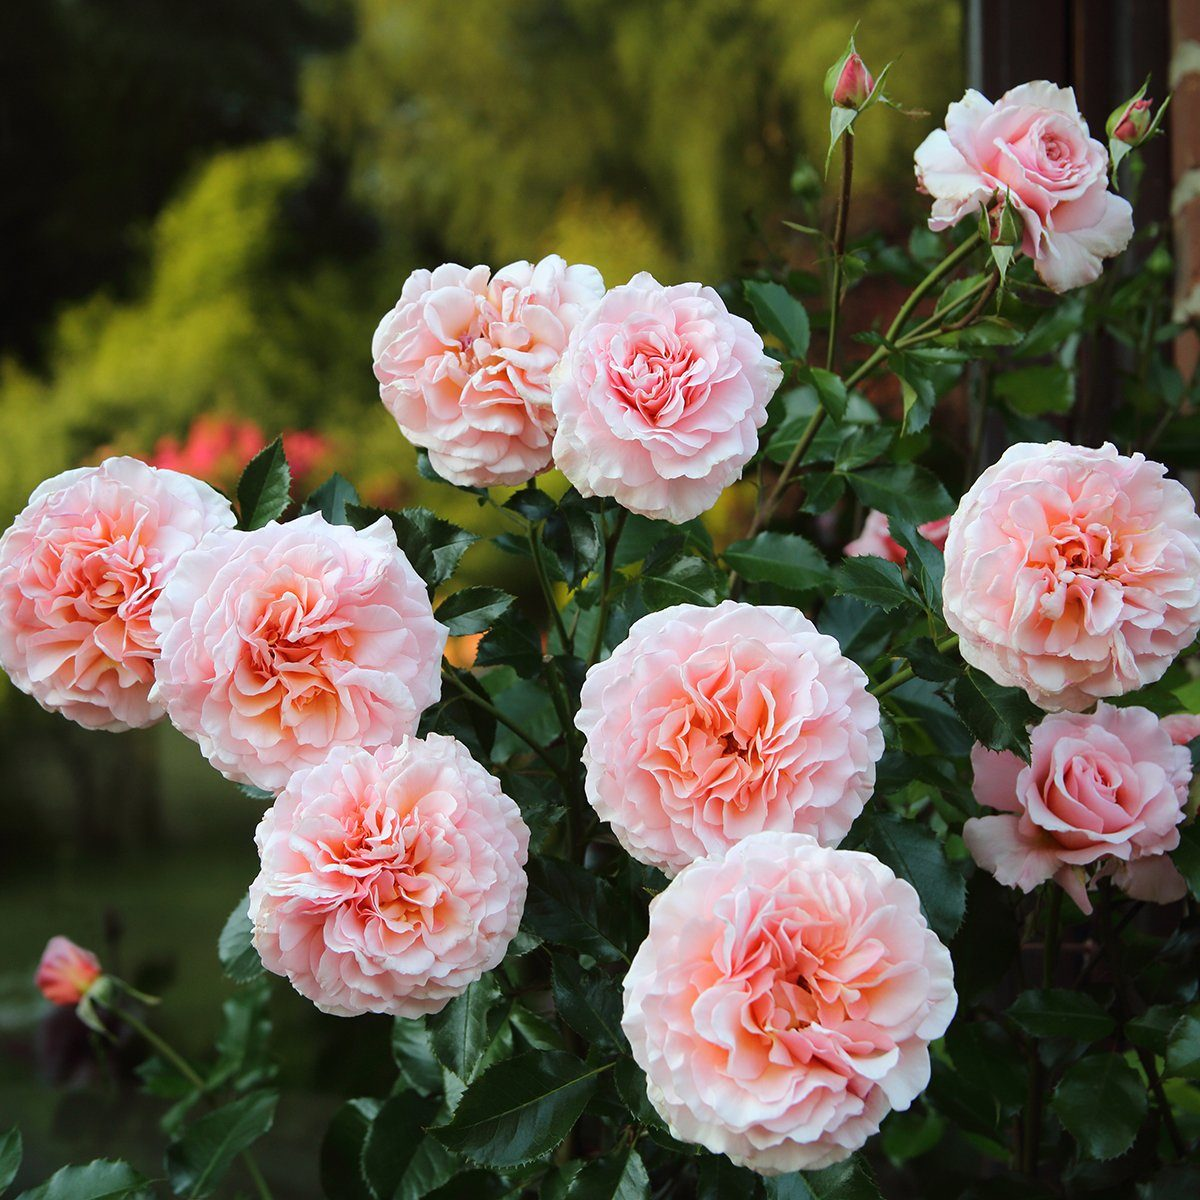 Rose bush covered with beautiful fragrant blooms and lit by early summer sunshine, English country garden, Surrey, UK